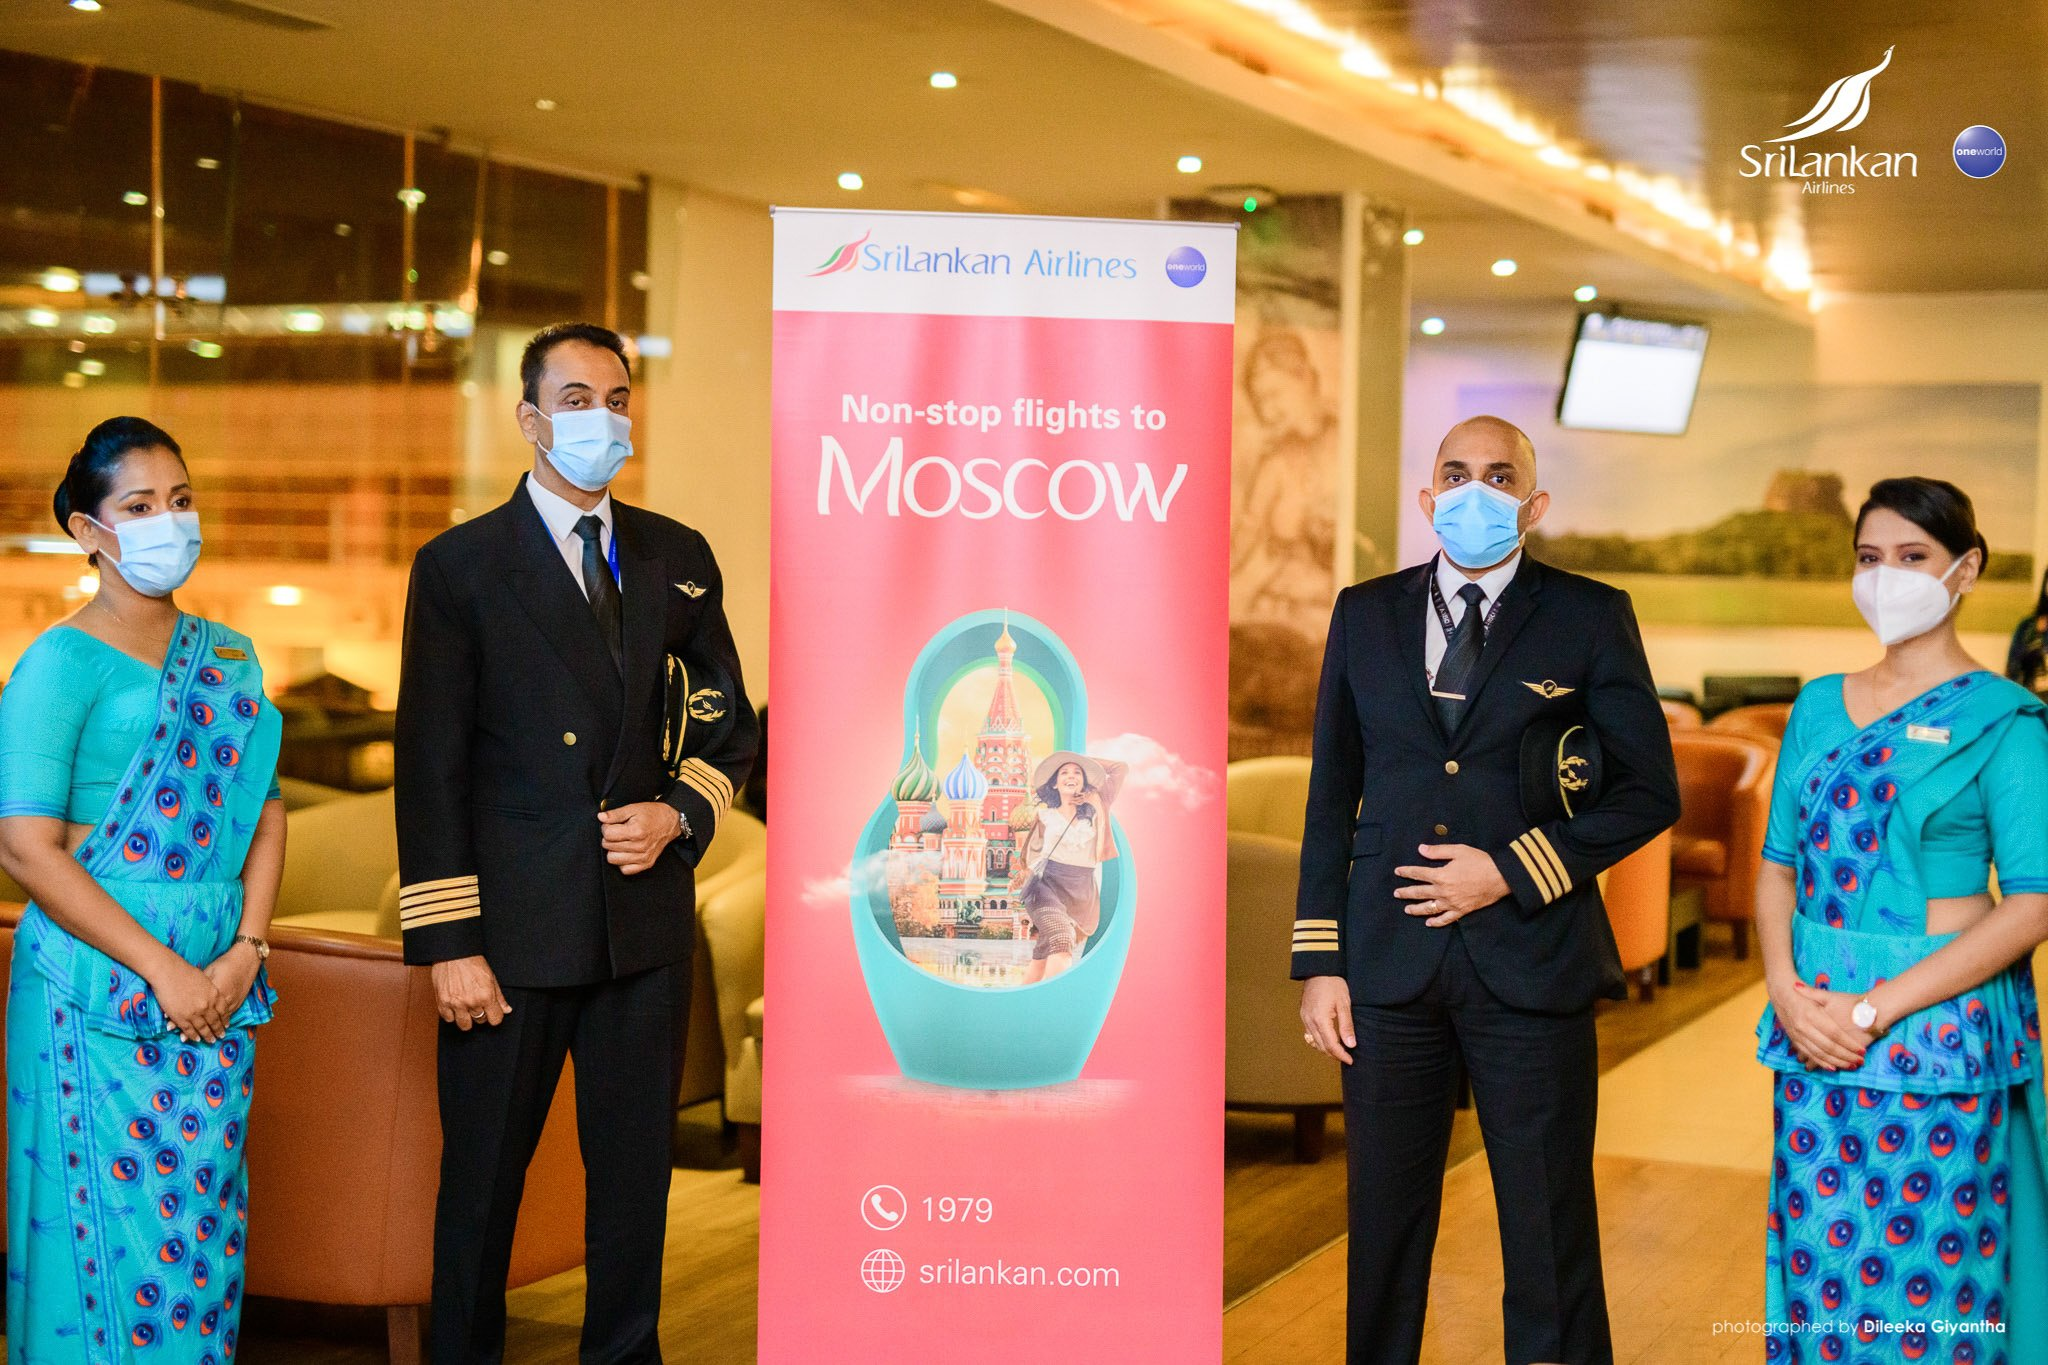 Discover #Moscow, the gateway to Russia and one of the most spectacular cities in the world, with weekly direct flights from Colombo starting July 30, 2021